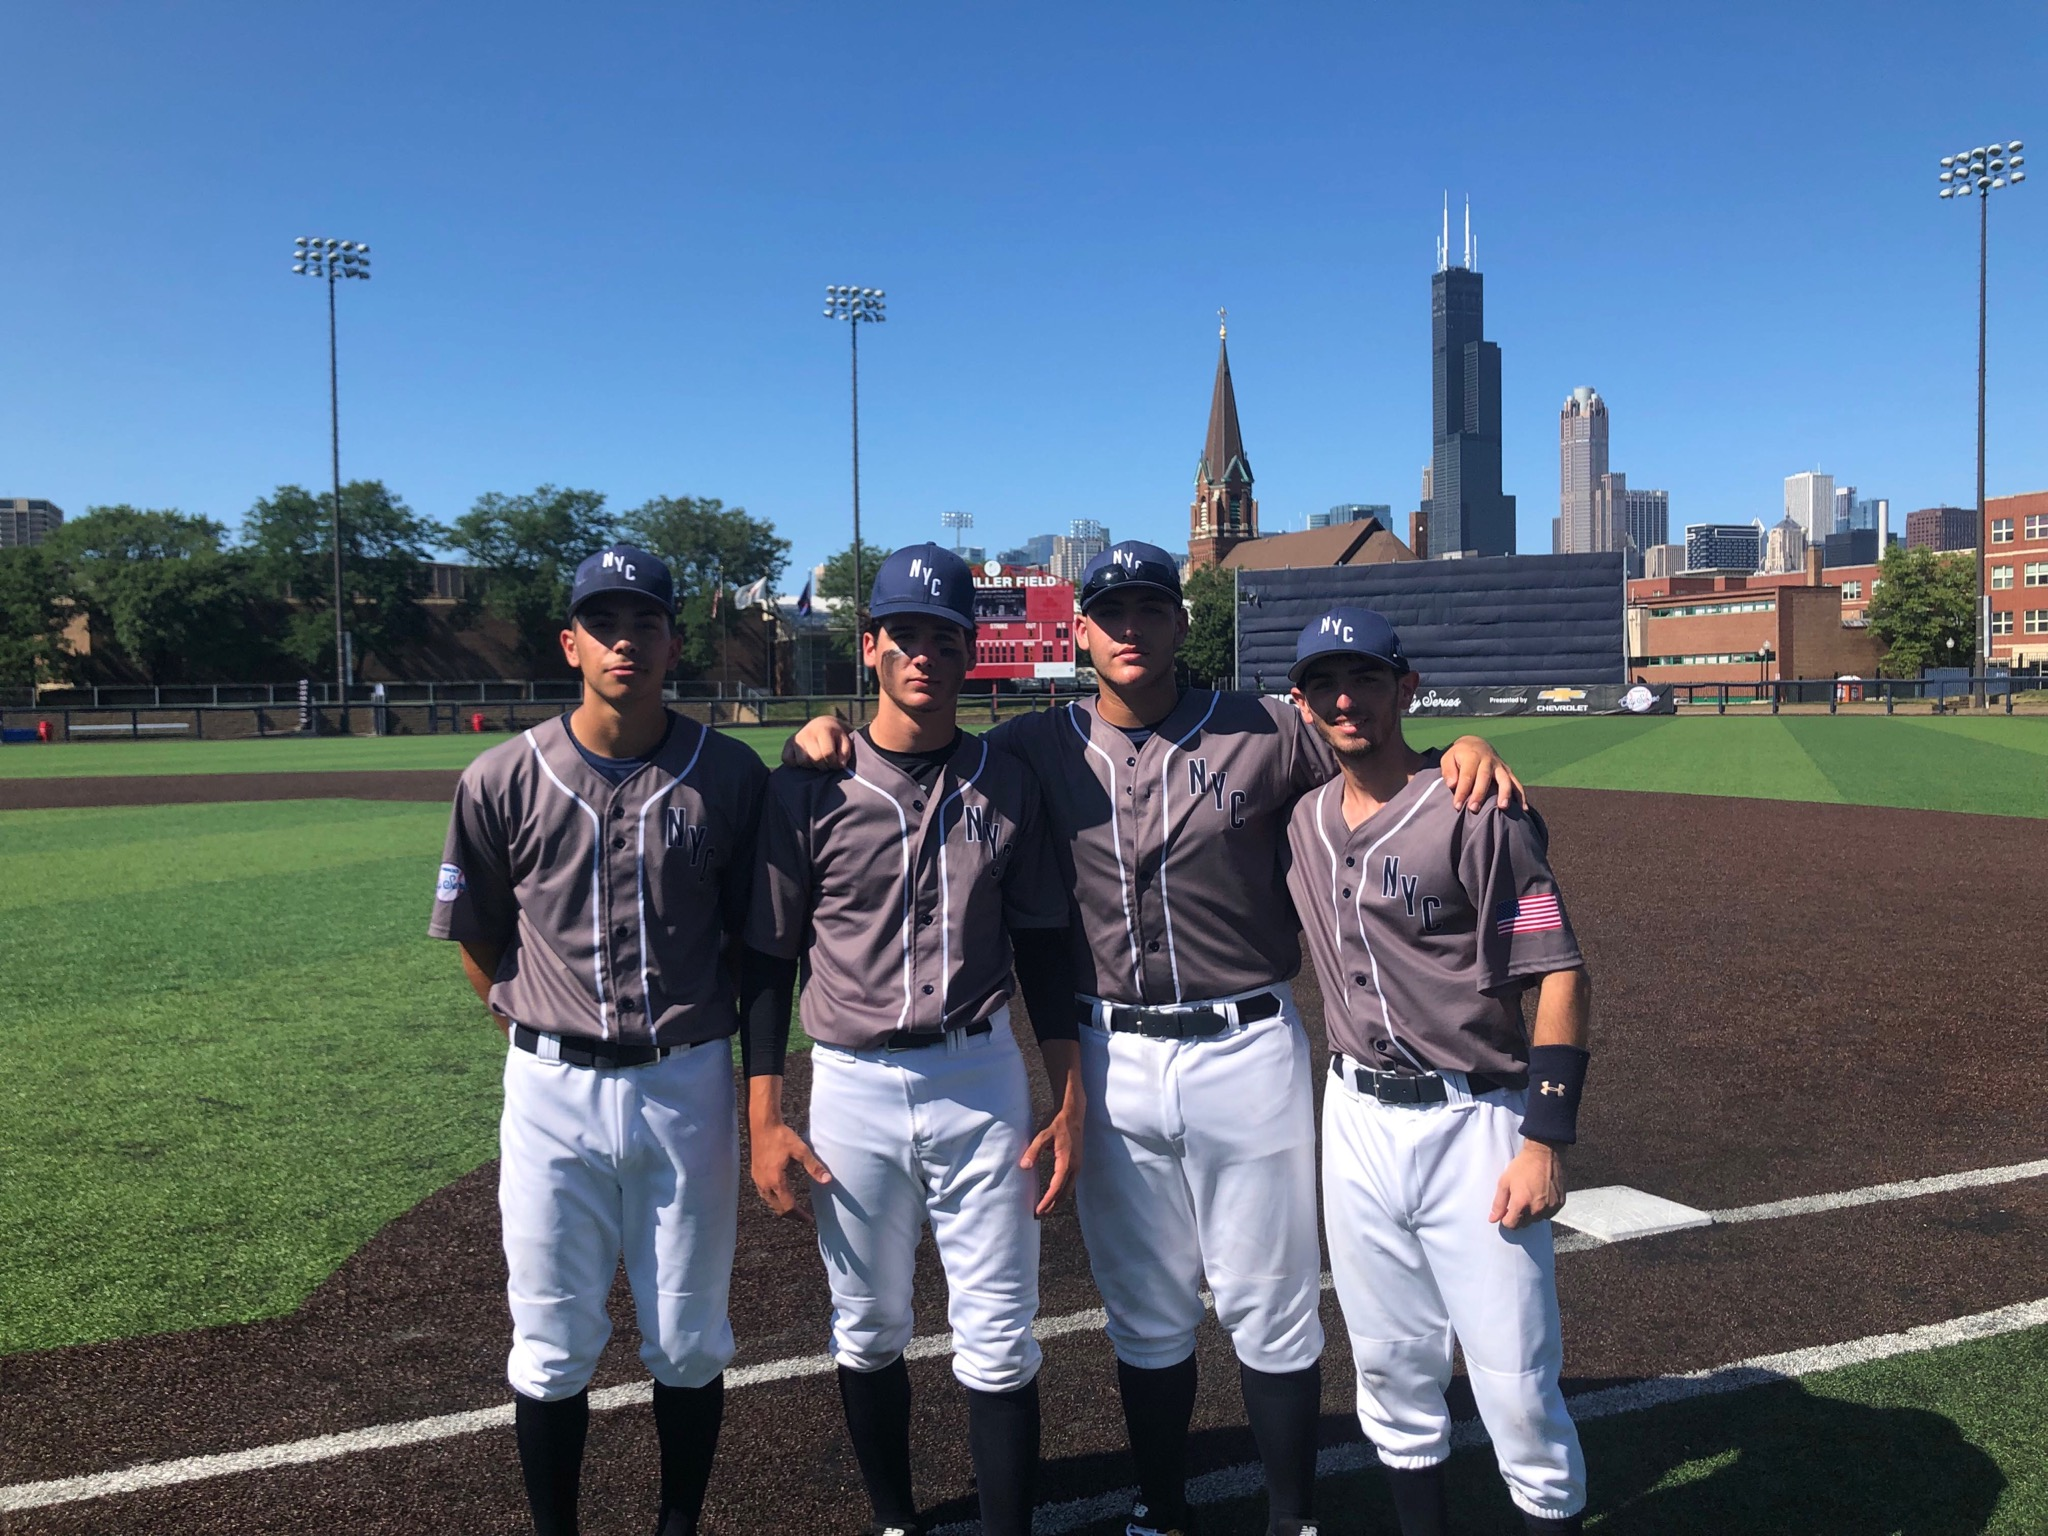 HS baseball: These 4 Staten Islanders represented NYC at Geico City Series